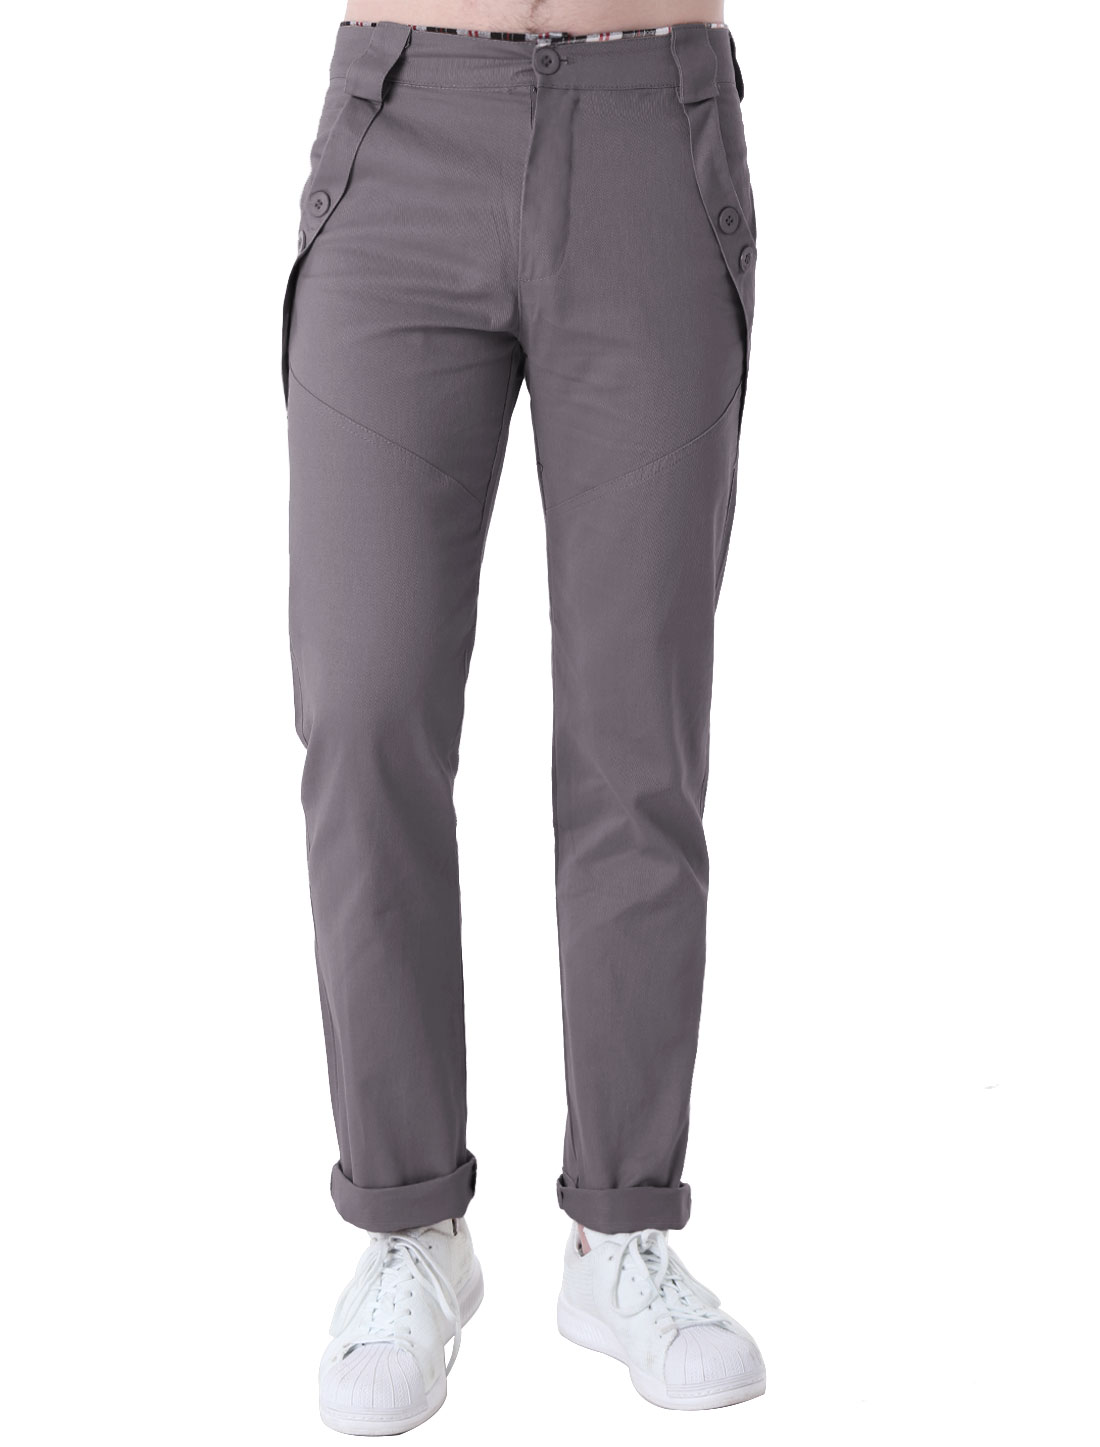 Men Fashion Buttons Decor Zipper Up Closure Pants Medium Gray W34